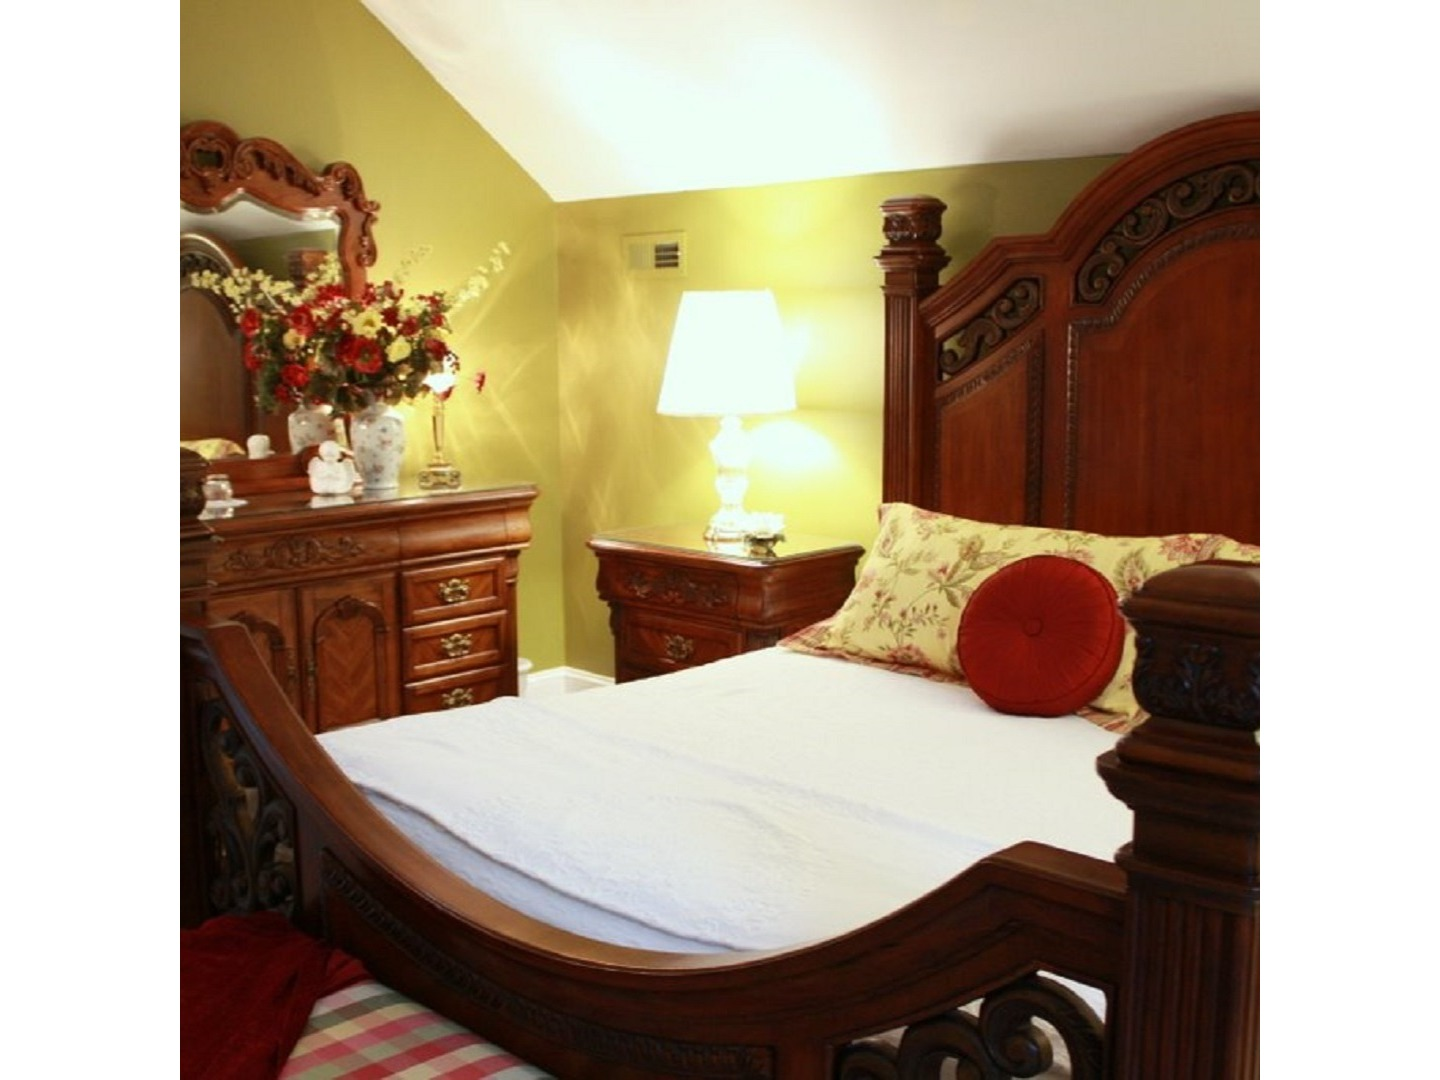 A bedroom with a bed and a chair in a room at Red Rocker Inn.